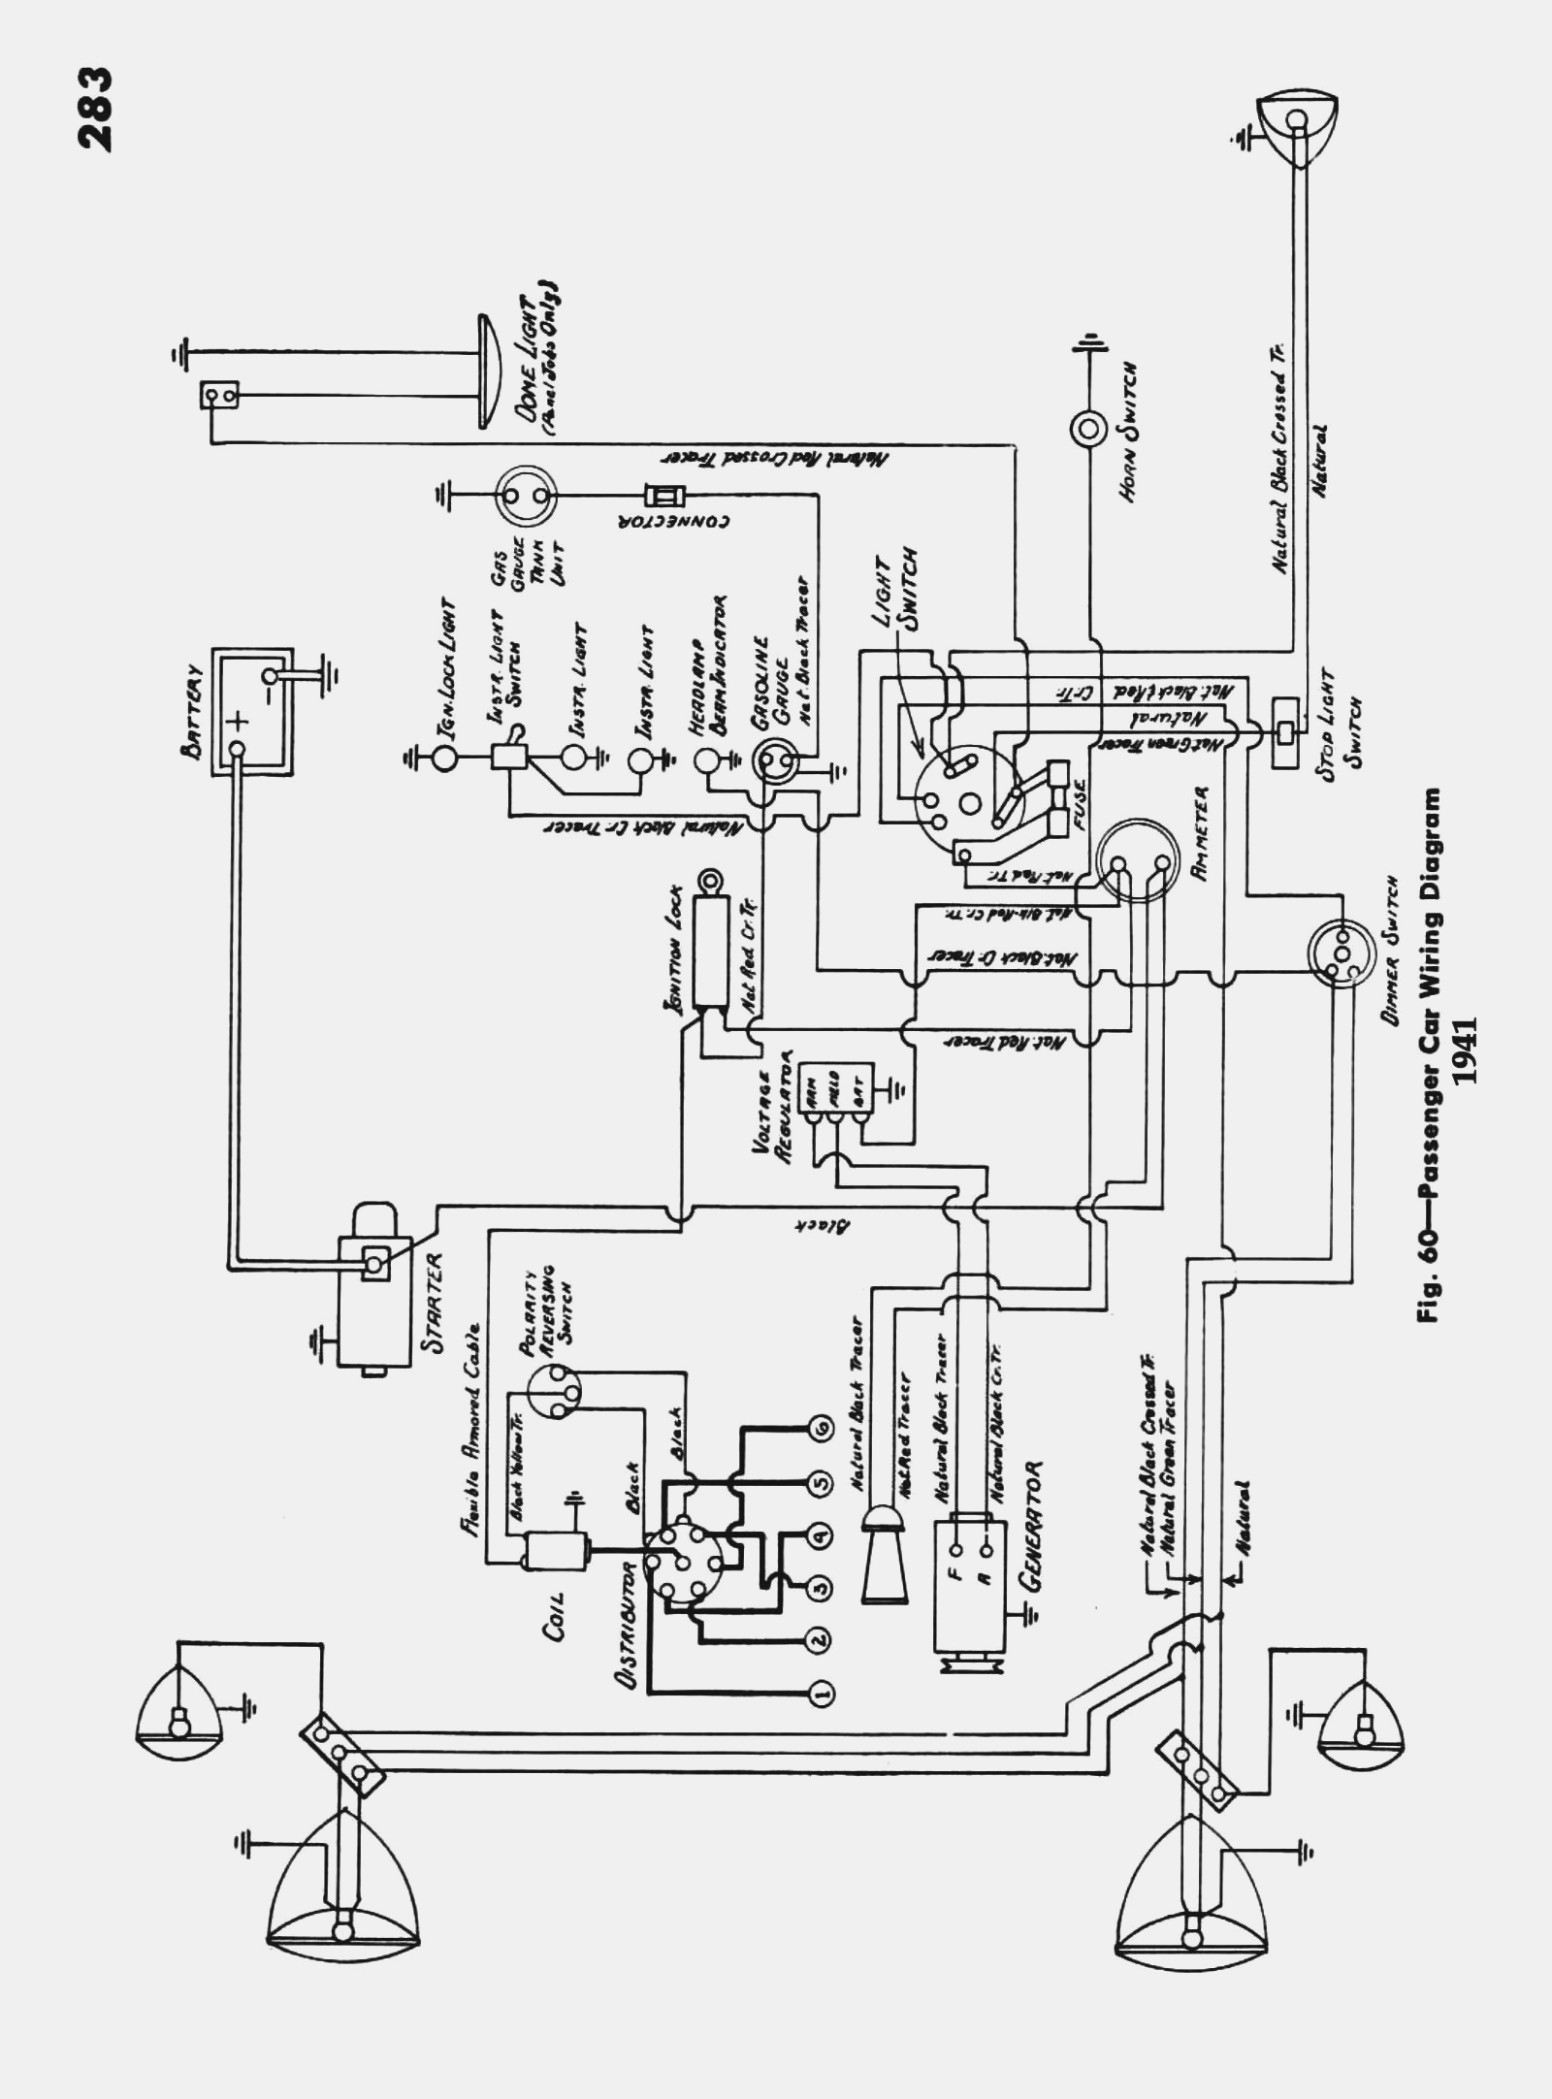 hight resolution of international truck dpf wiring diagram wiring diagraminternational truck dpf wiring diagram 2